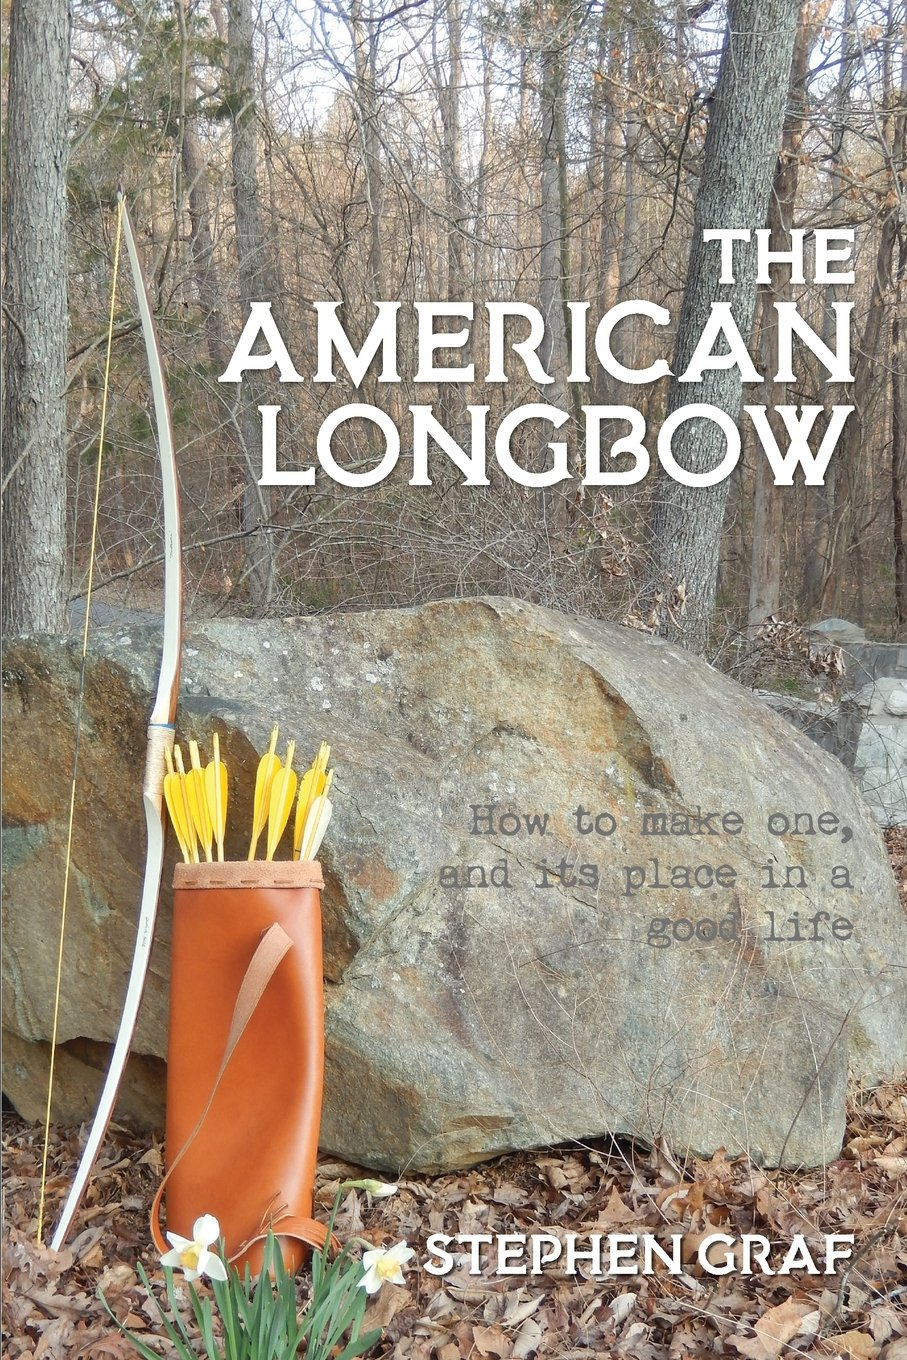 the-american-longbow-how-to-make-one-and-its-place-in-a-good-life